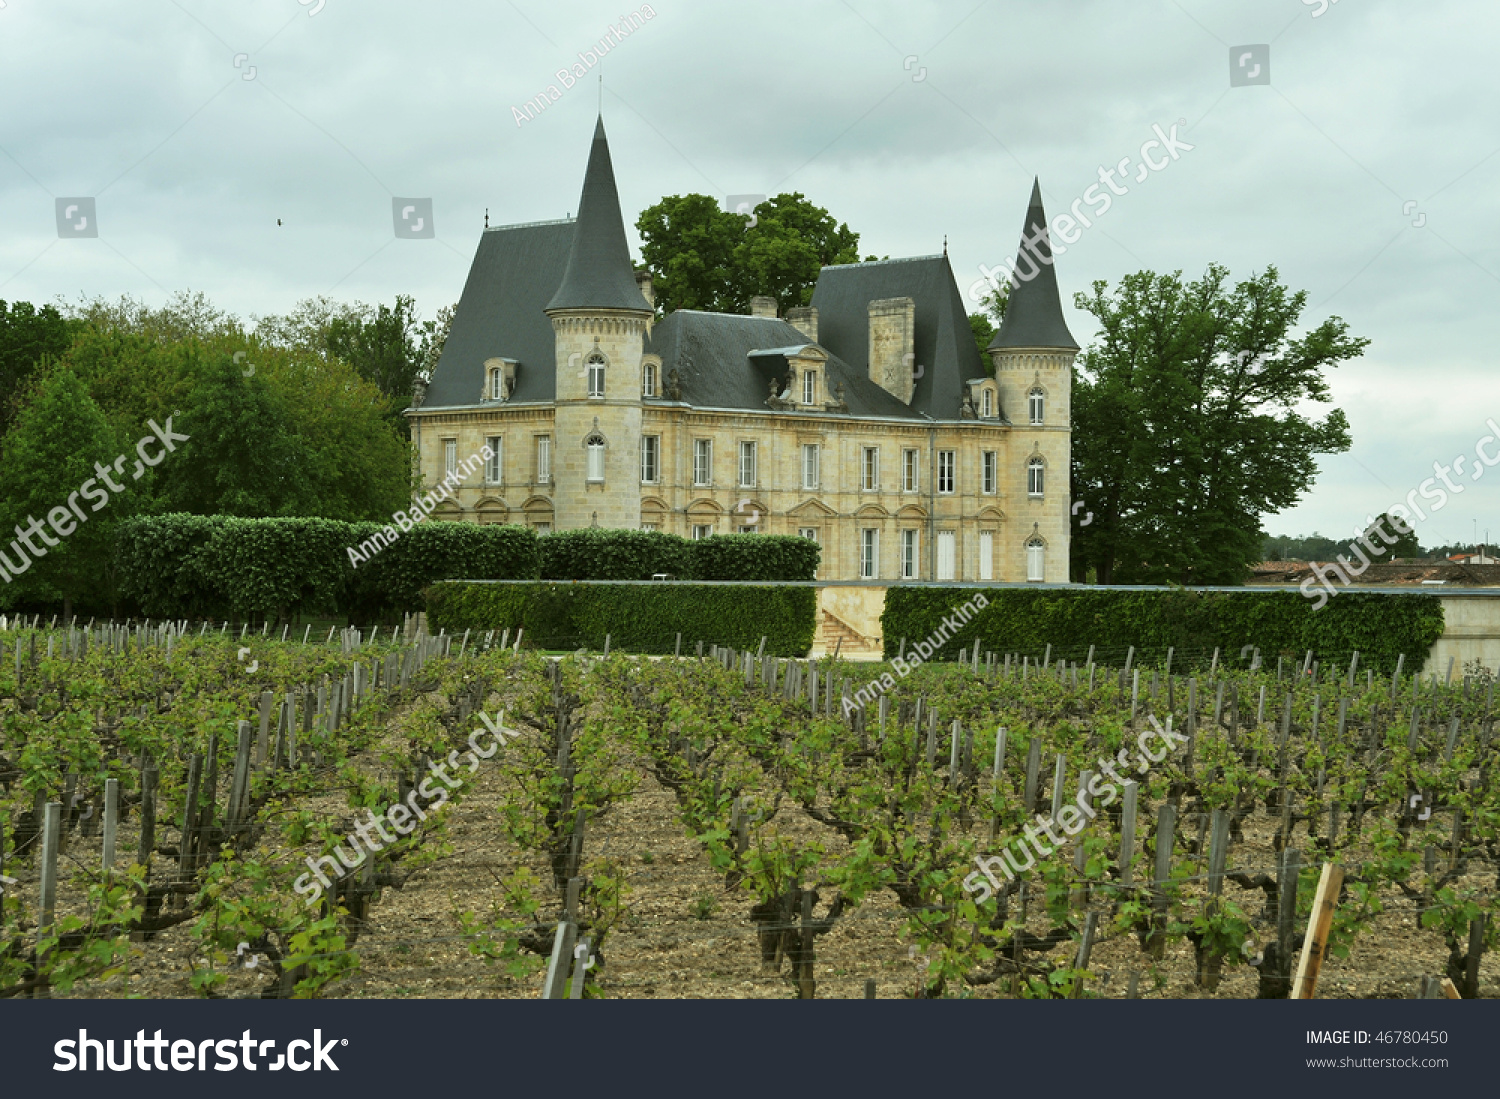 A Chateau In The Loire Valley France Europe Stock Photo